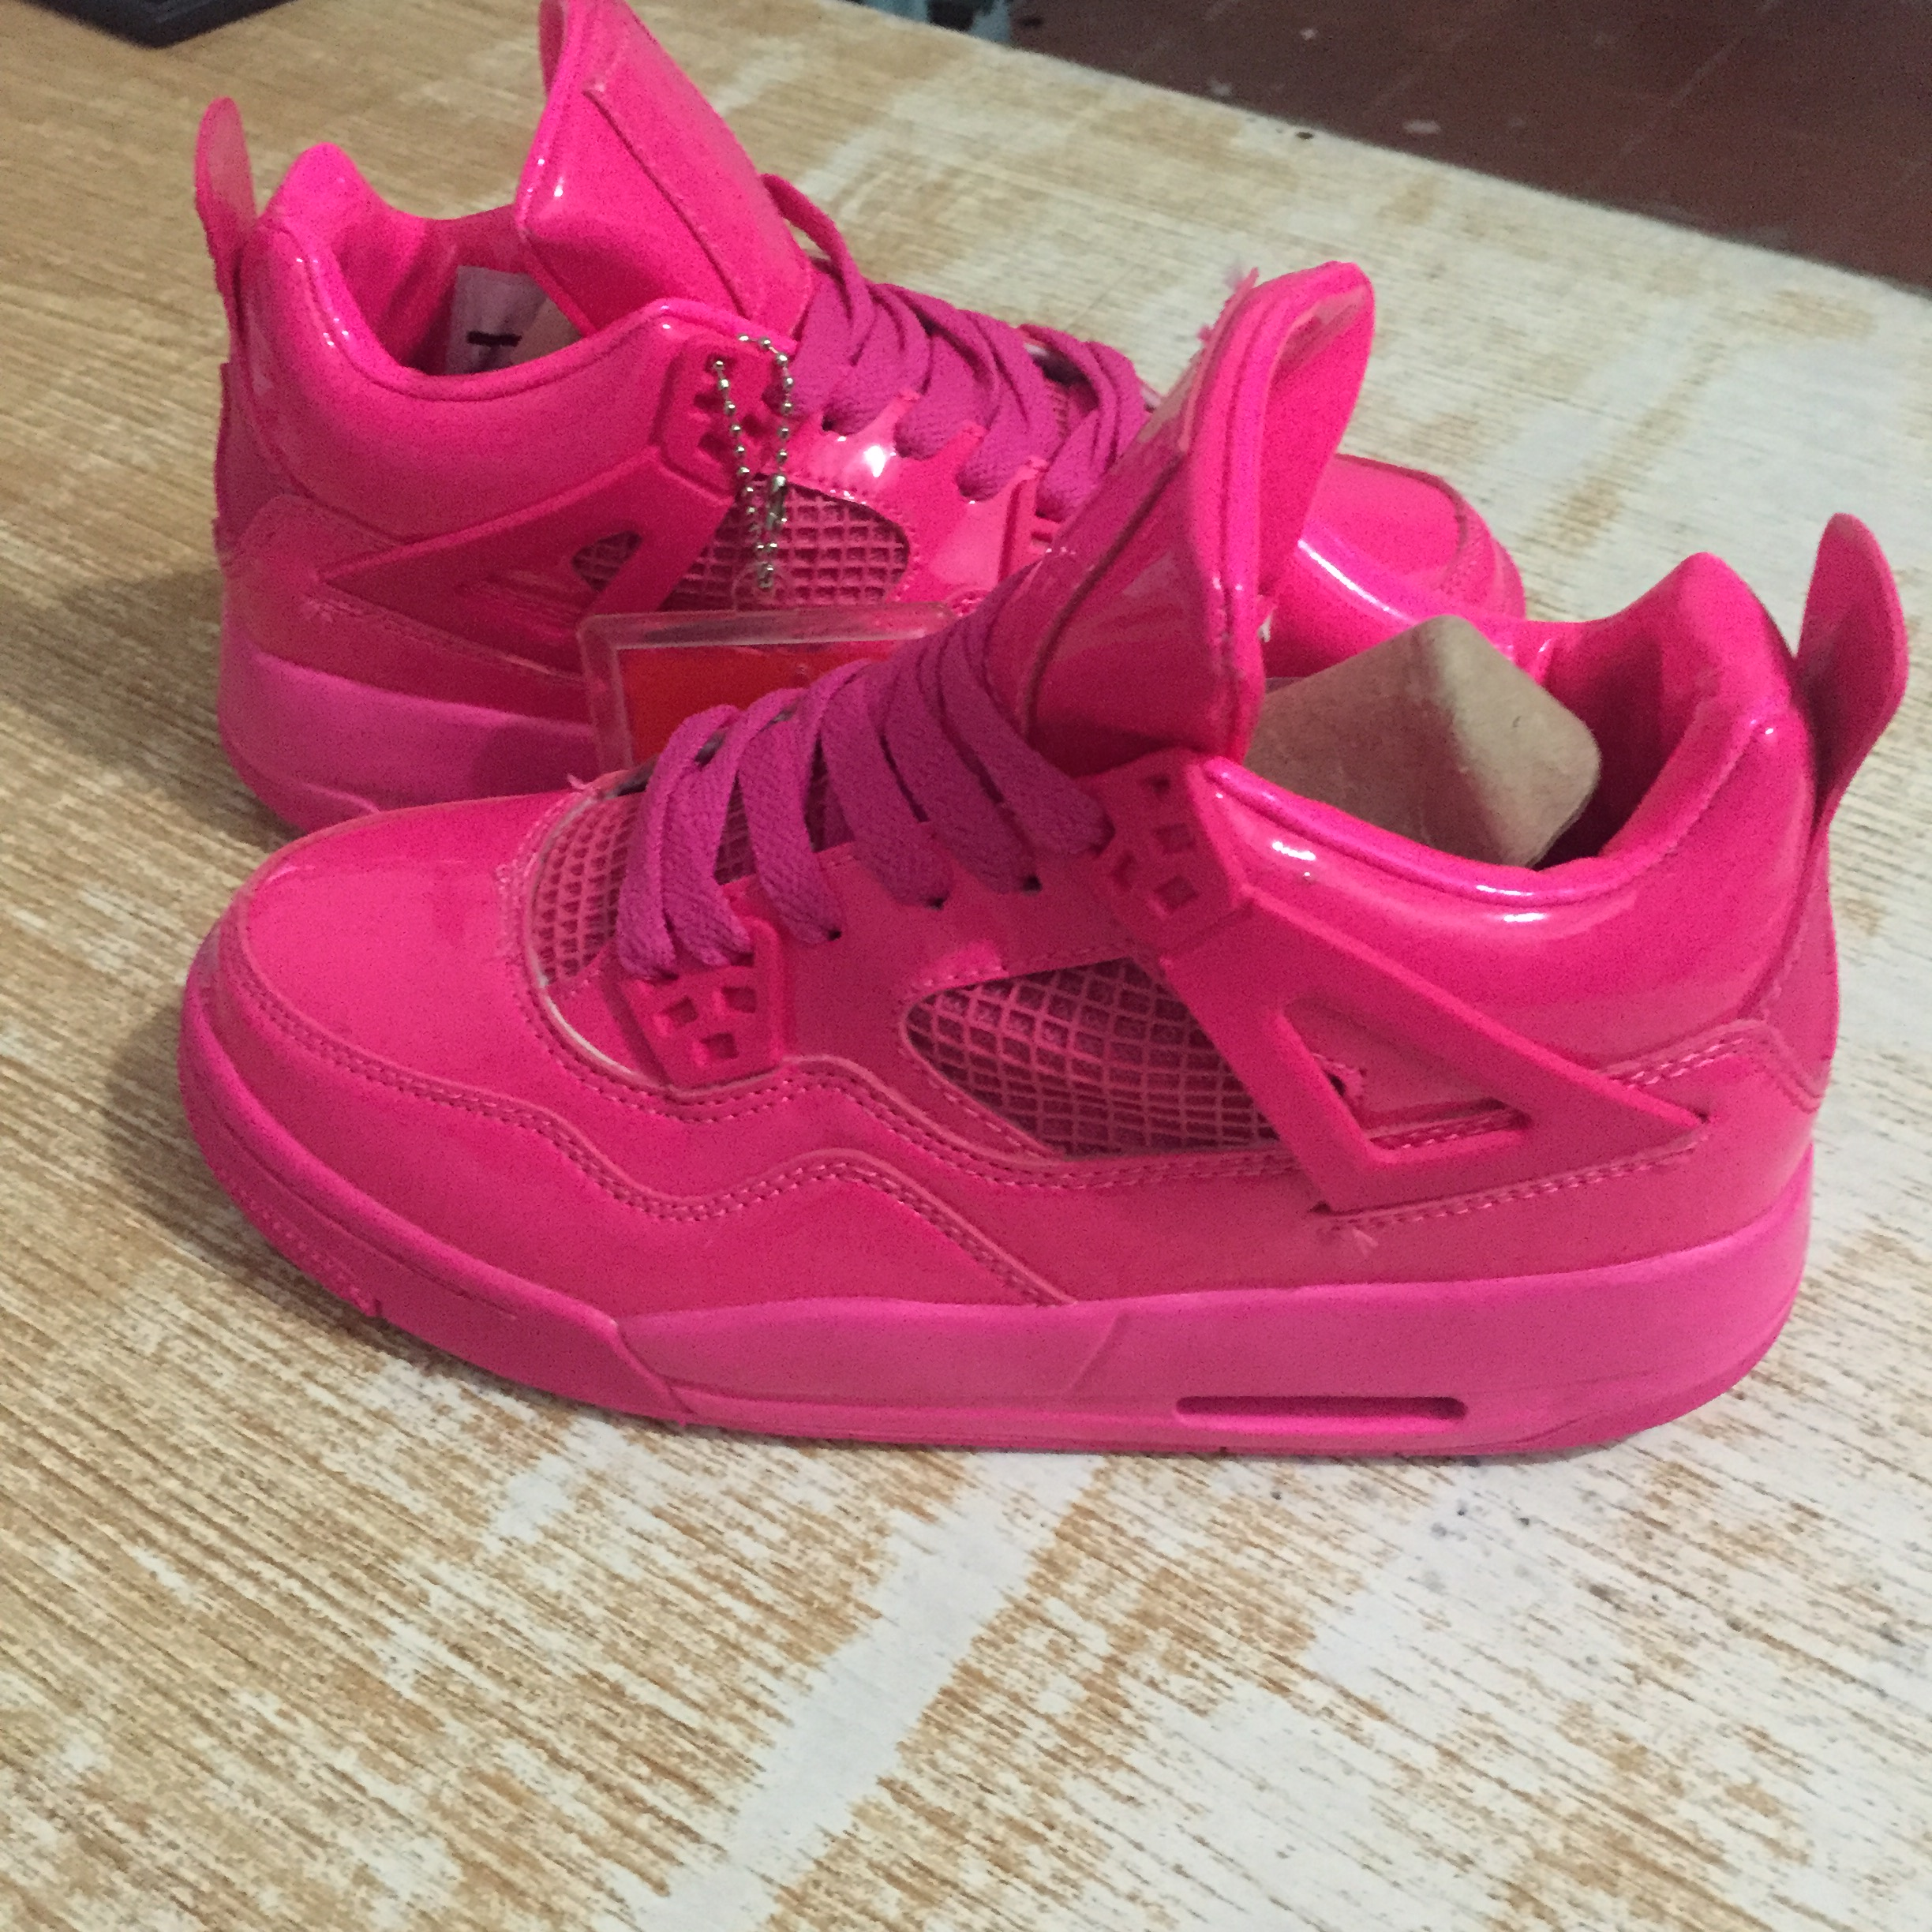 cba7a9d9a46add Air Jordan 4 All Red Valentine s Day Shoes